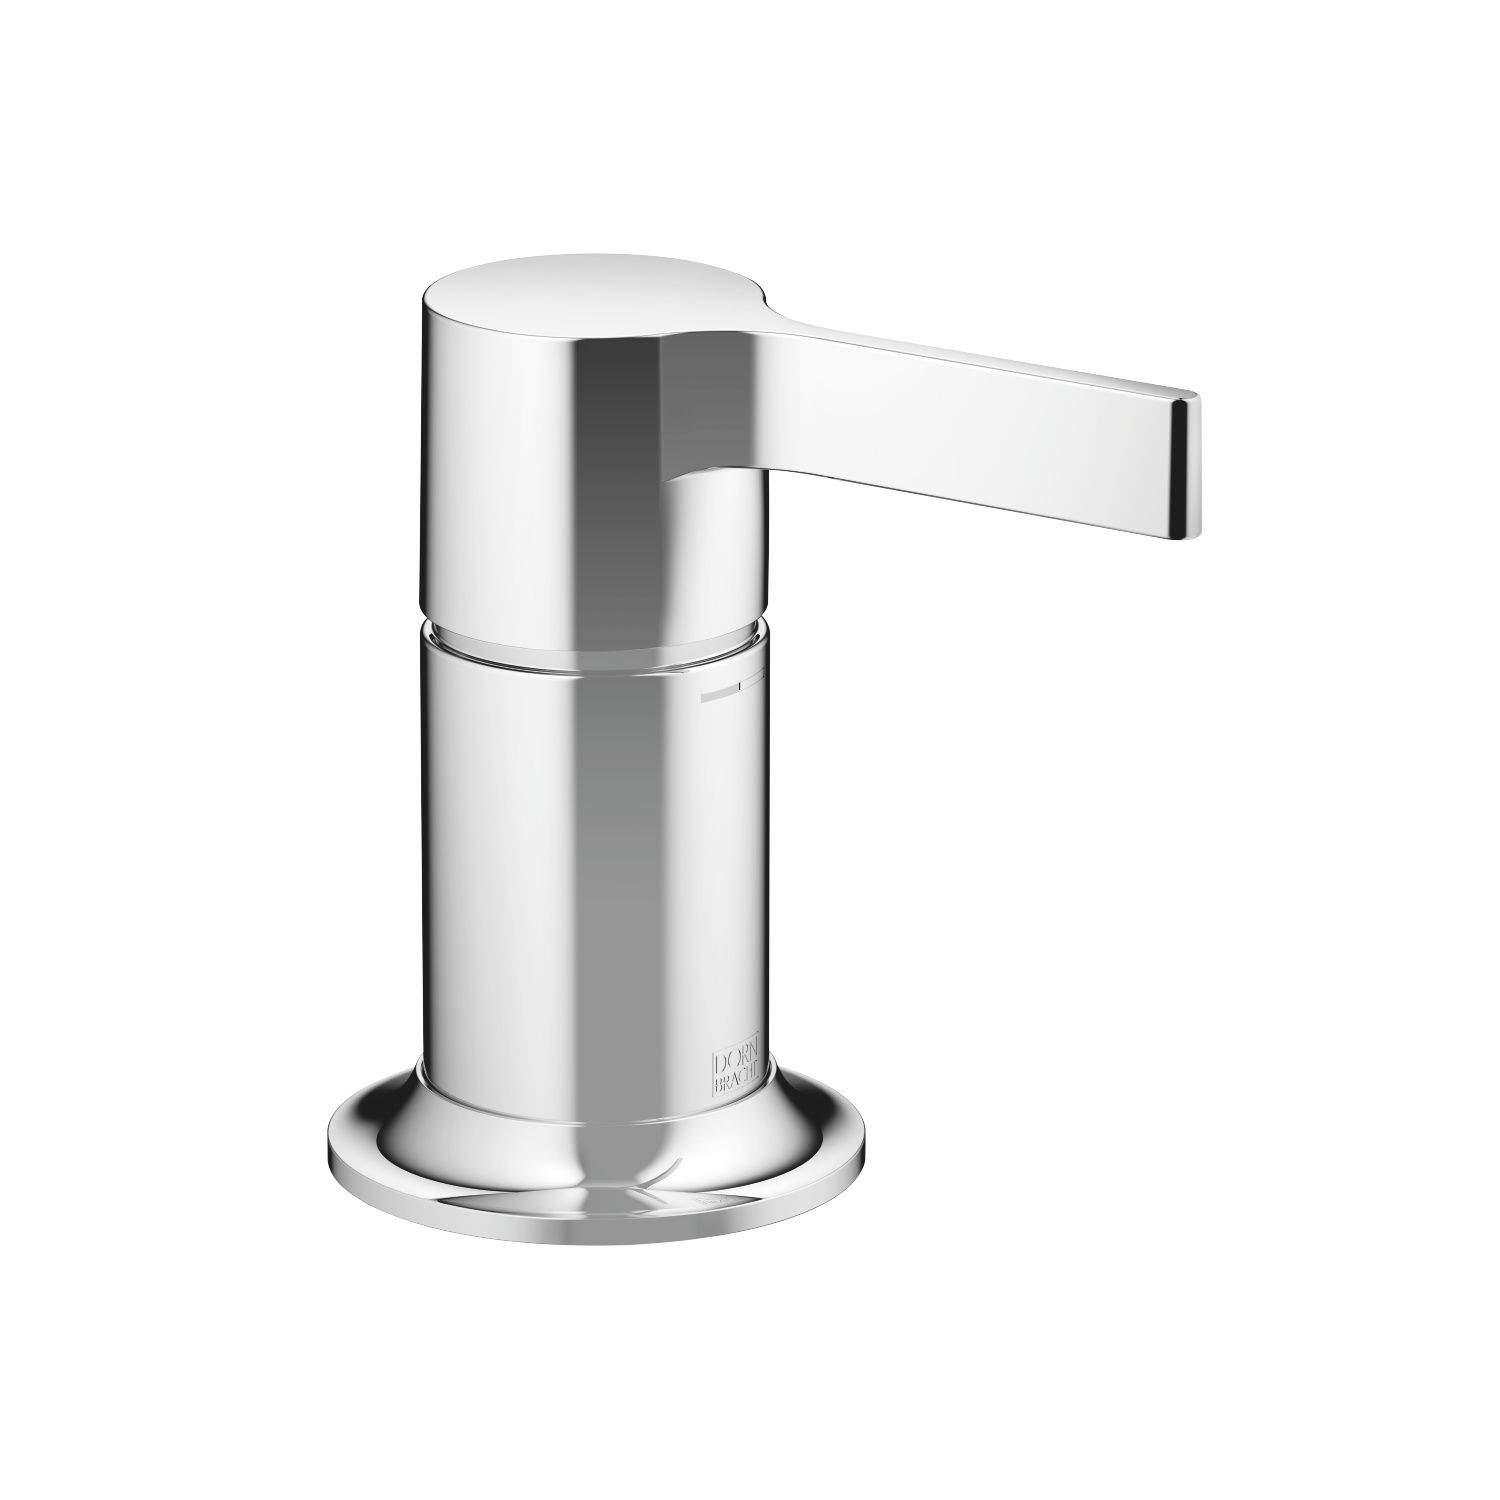 Single-lever bath mixer for bath rim or tile edge installation - polished chrome